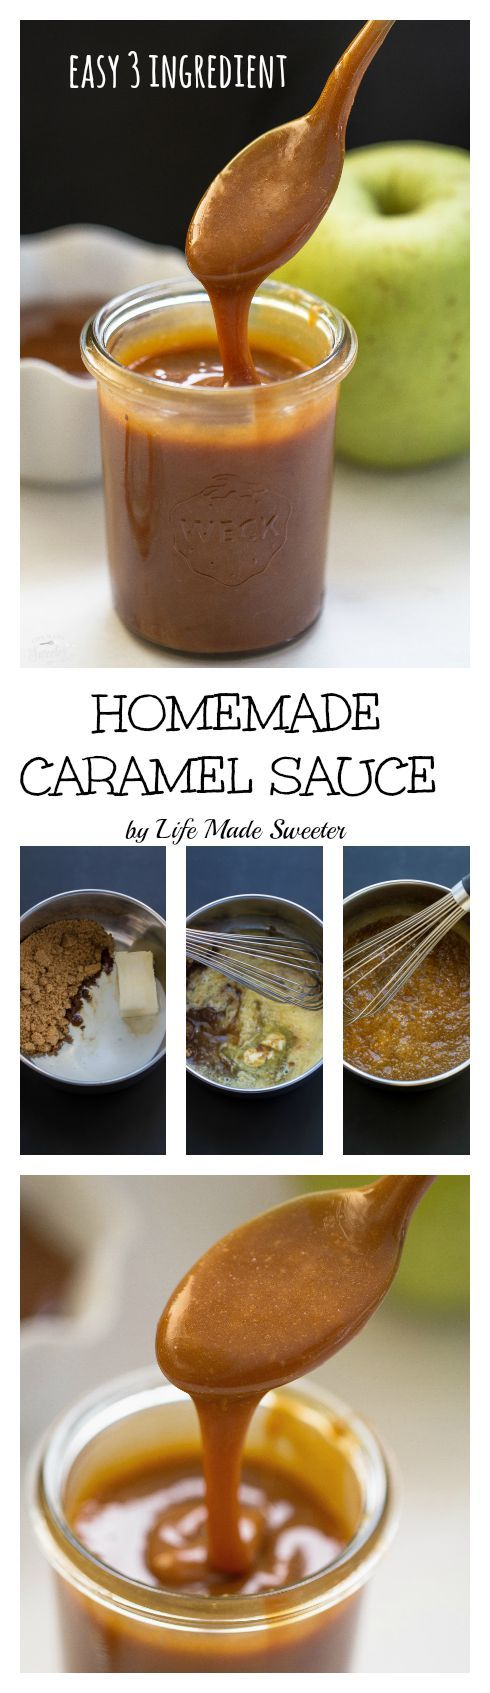 Homemade Caramel Sauce is so easy to make with only 3 ingredients!!